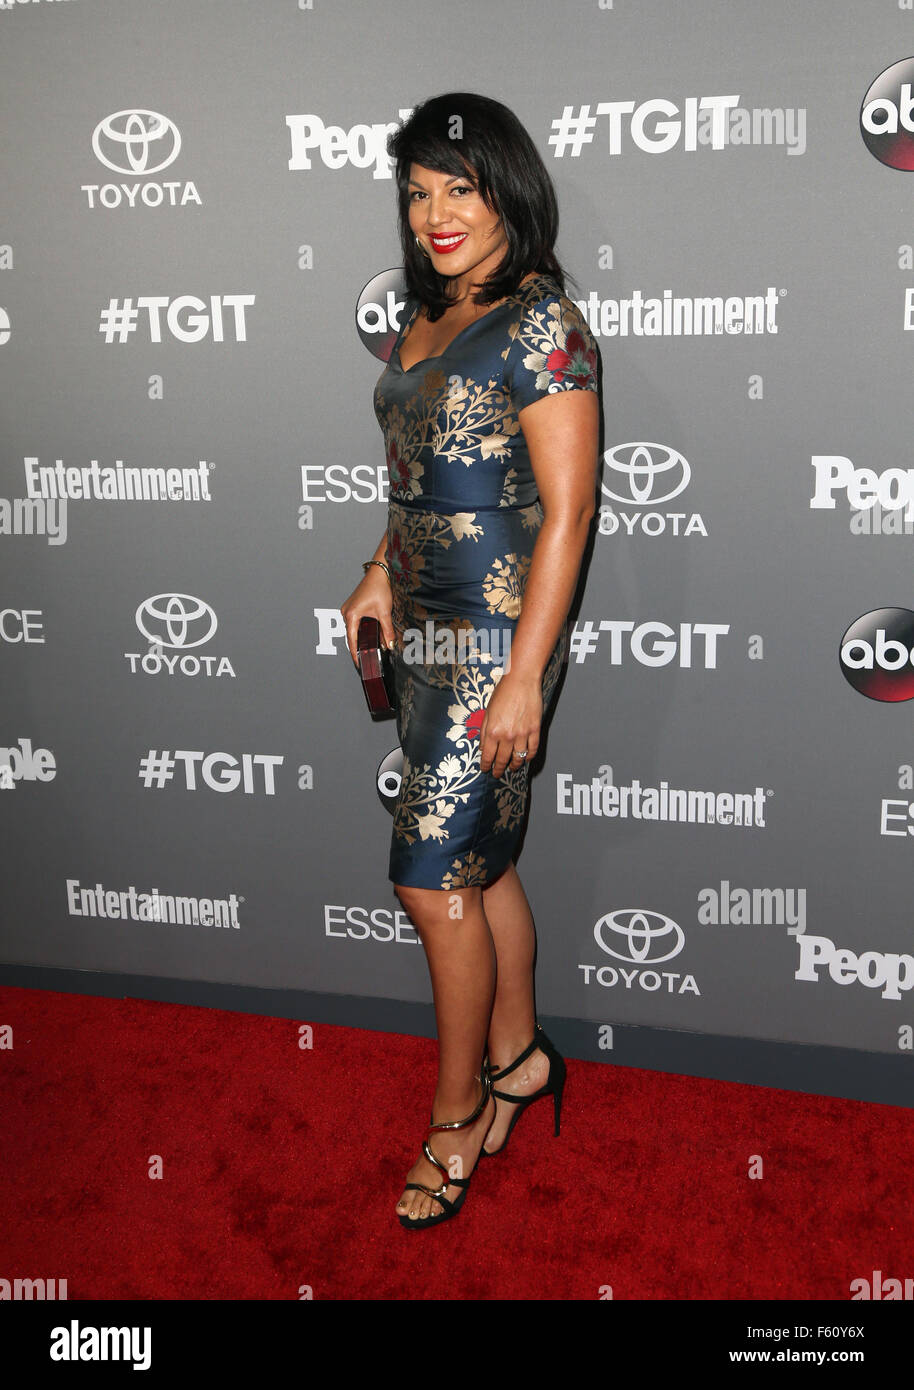 ABC's TGIT premiere event - Arrivals  Featuring: Sara Ramirez Where: Los Angeles, California, United States When: Stock Photo